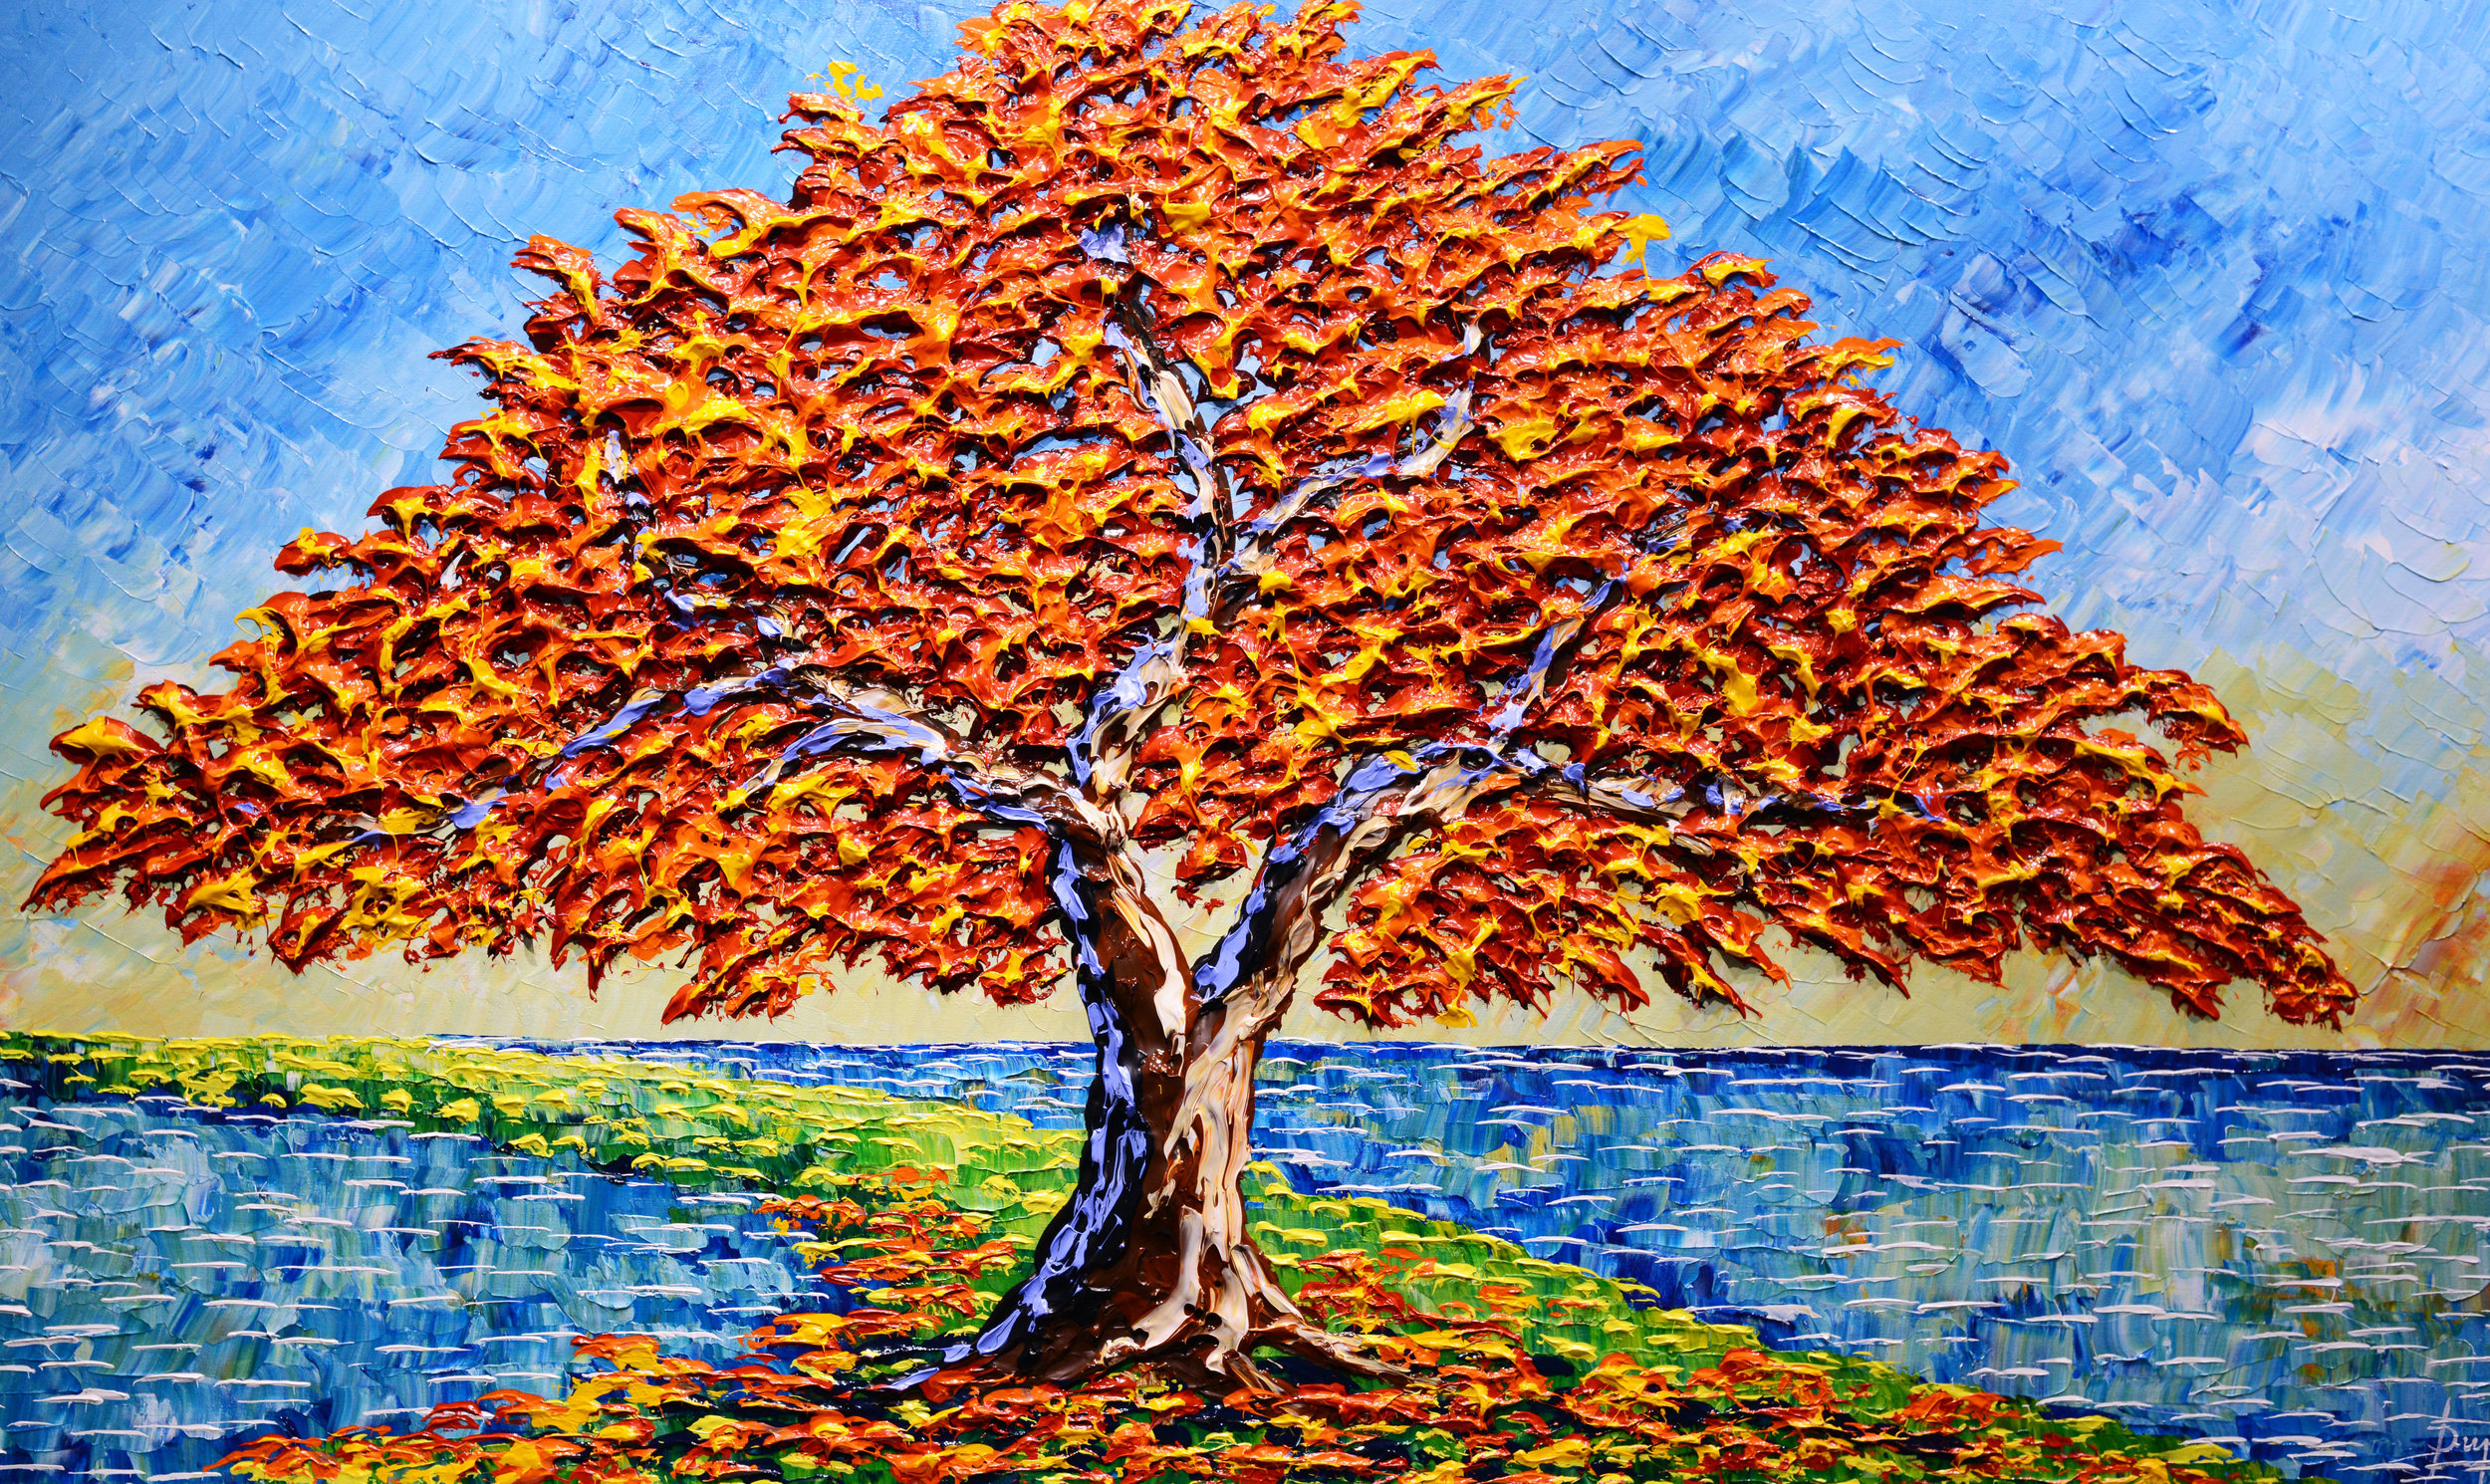 Autumn Maple of Colorful Skies,36x60